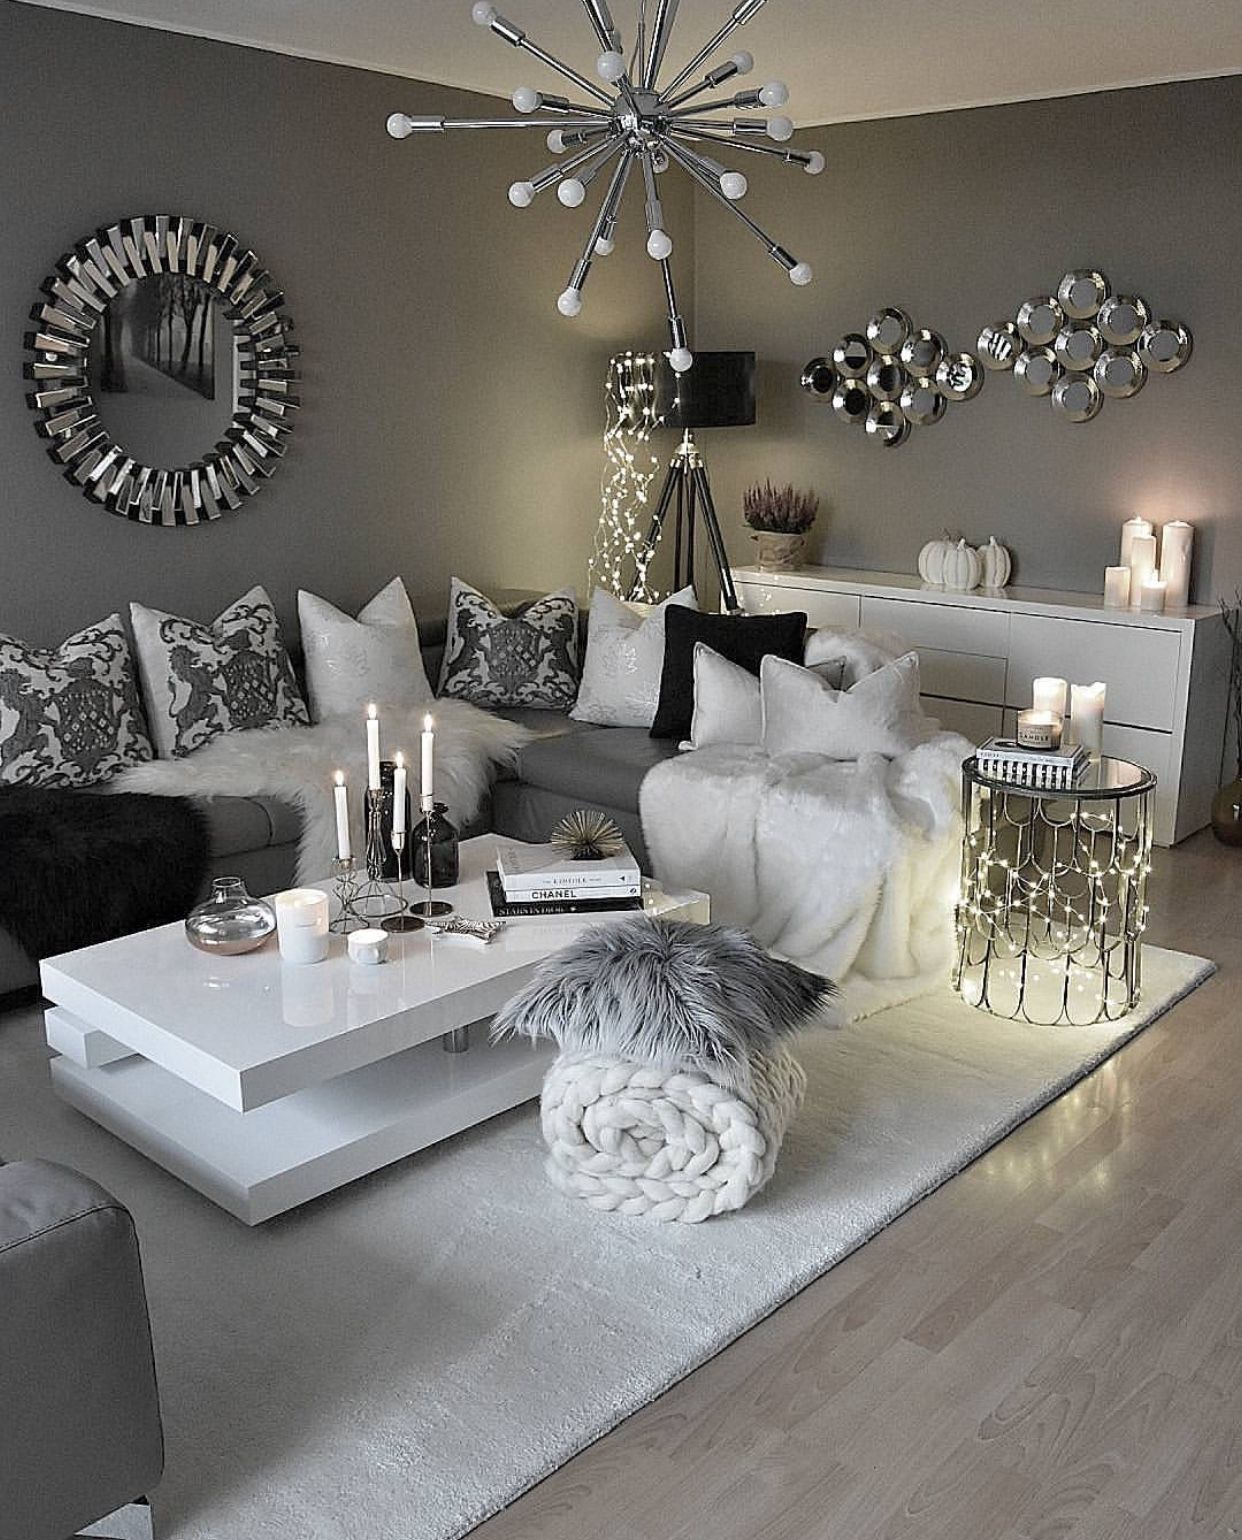 The living room is one of the most important areas in your house for a great hosting experience. Pin by 👅 on Home Sweet Home | Modern glam living room ...